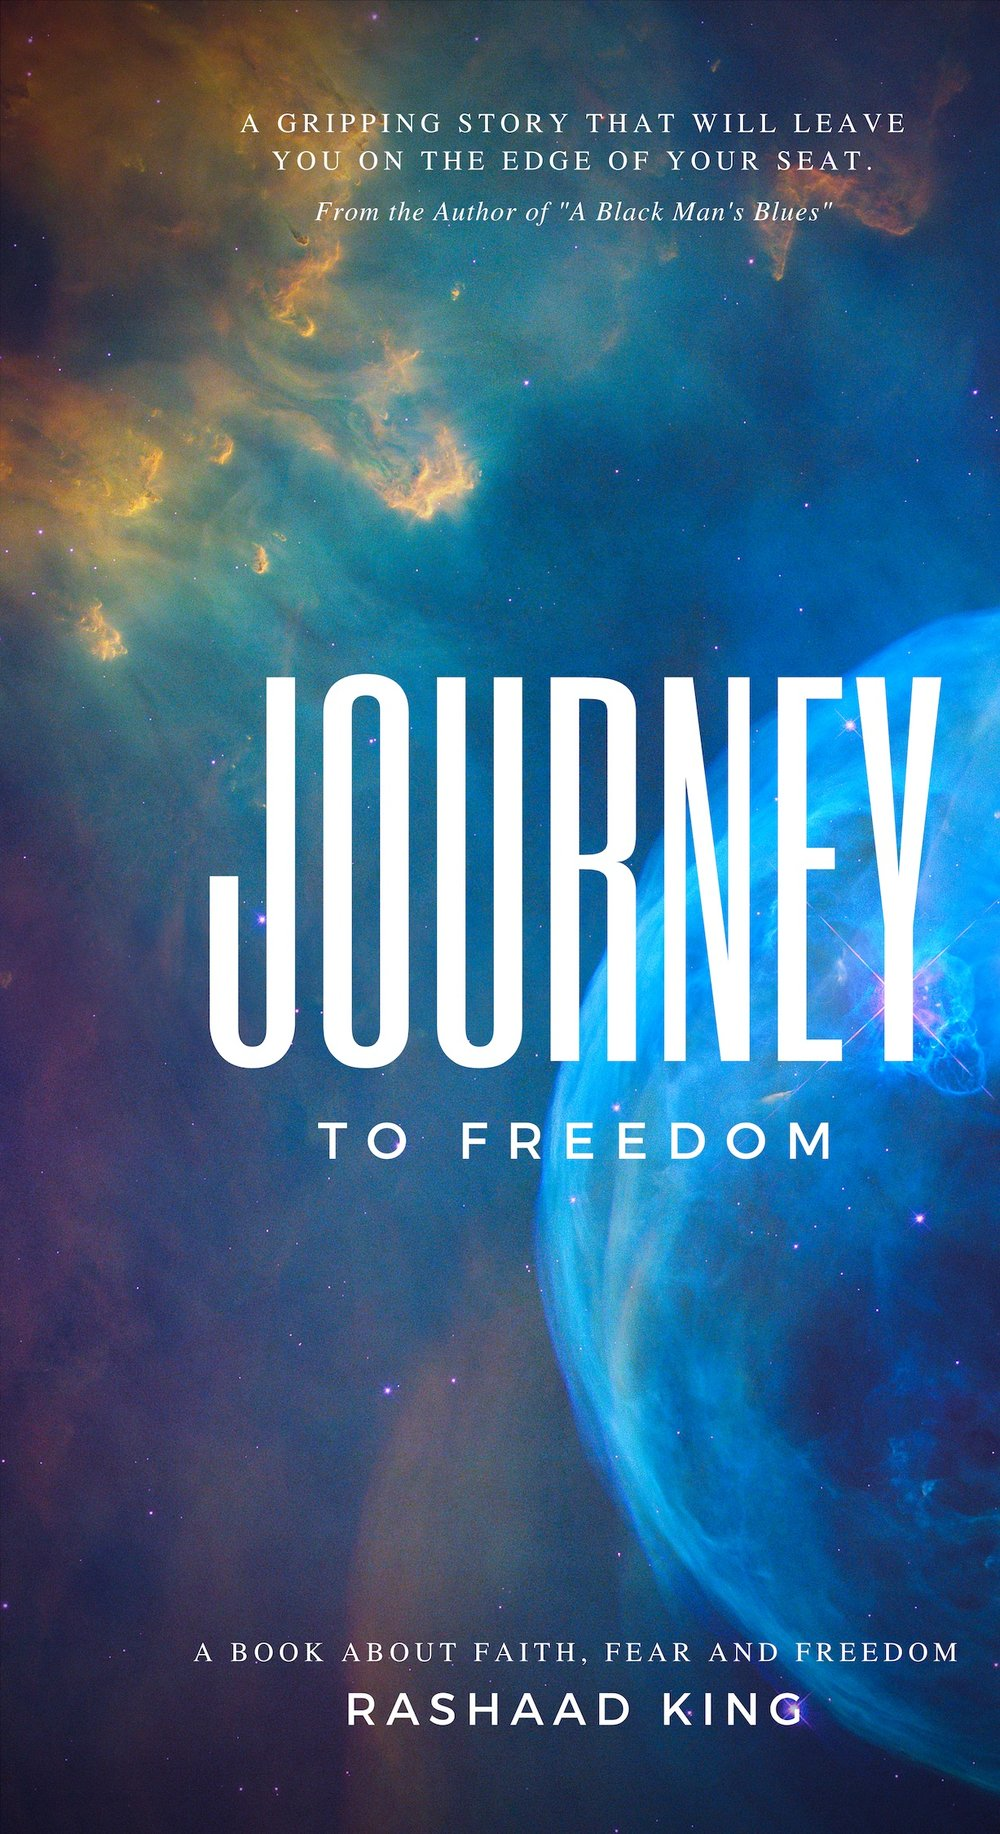 Preorder my new book! - In my new book, Journey to Freedom, I give a personal account of navigating the tumultuous waters of loss, depression, fear, uncertainty and doubt. After surviving four failed suicide attempts, after the death of my mother, after experiencing homelessness, I soon realized that I was here on purpose. This book is for anyone working through a transitional period. This is for the strong who is facing a moment of weakness. This is for all the Souljers in the world.Learn More